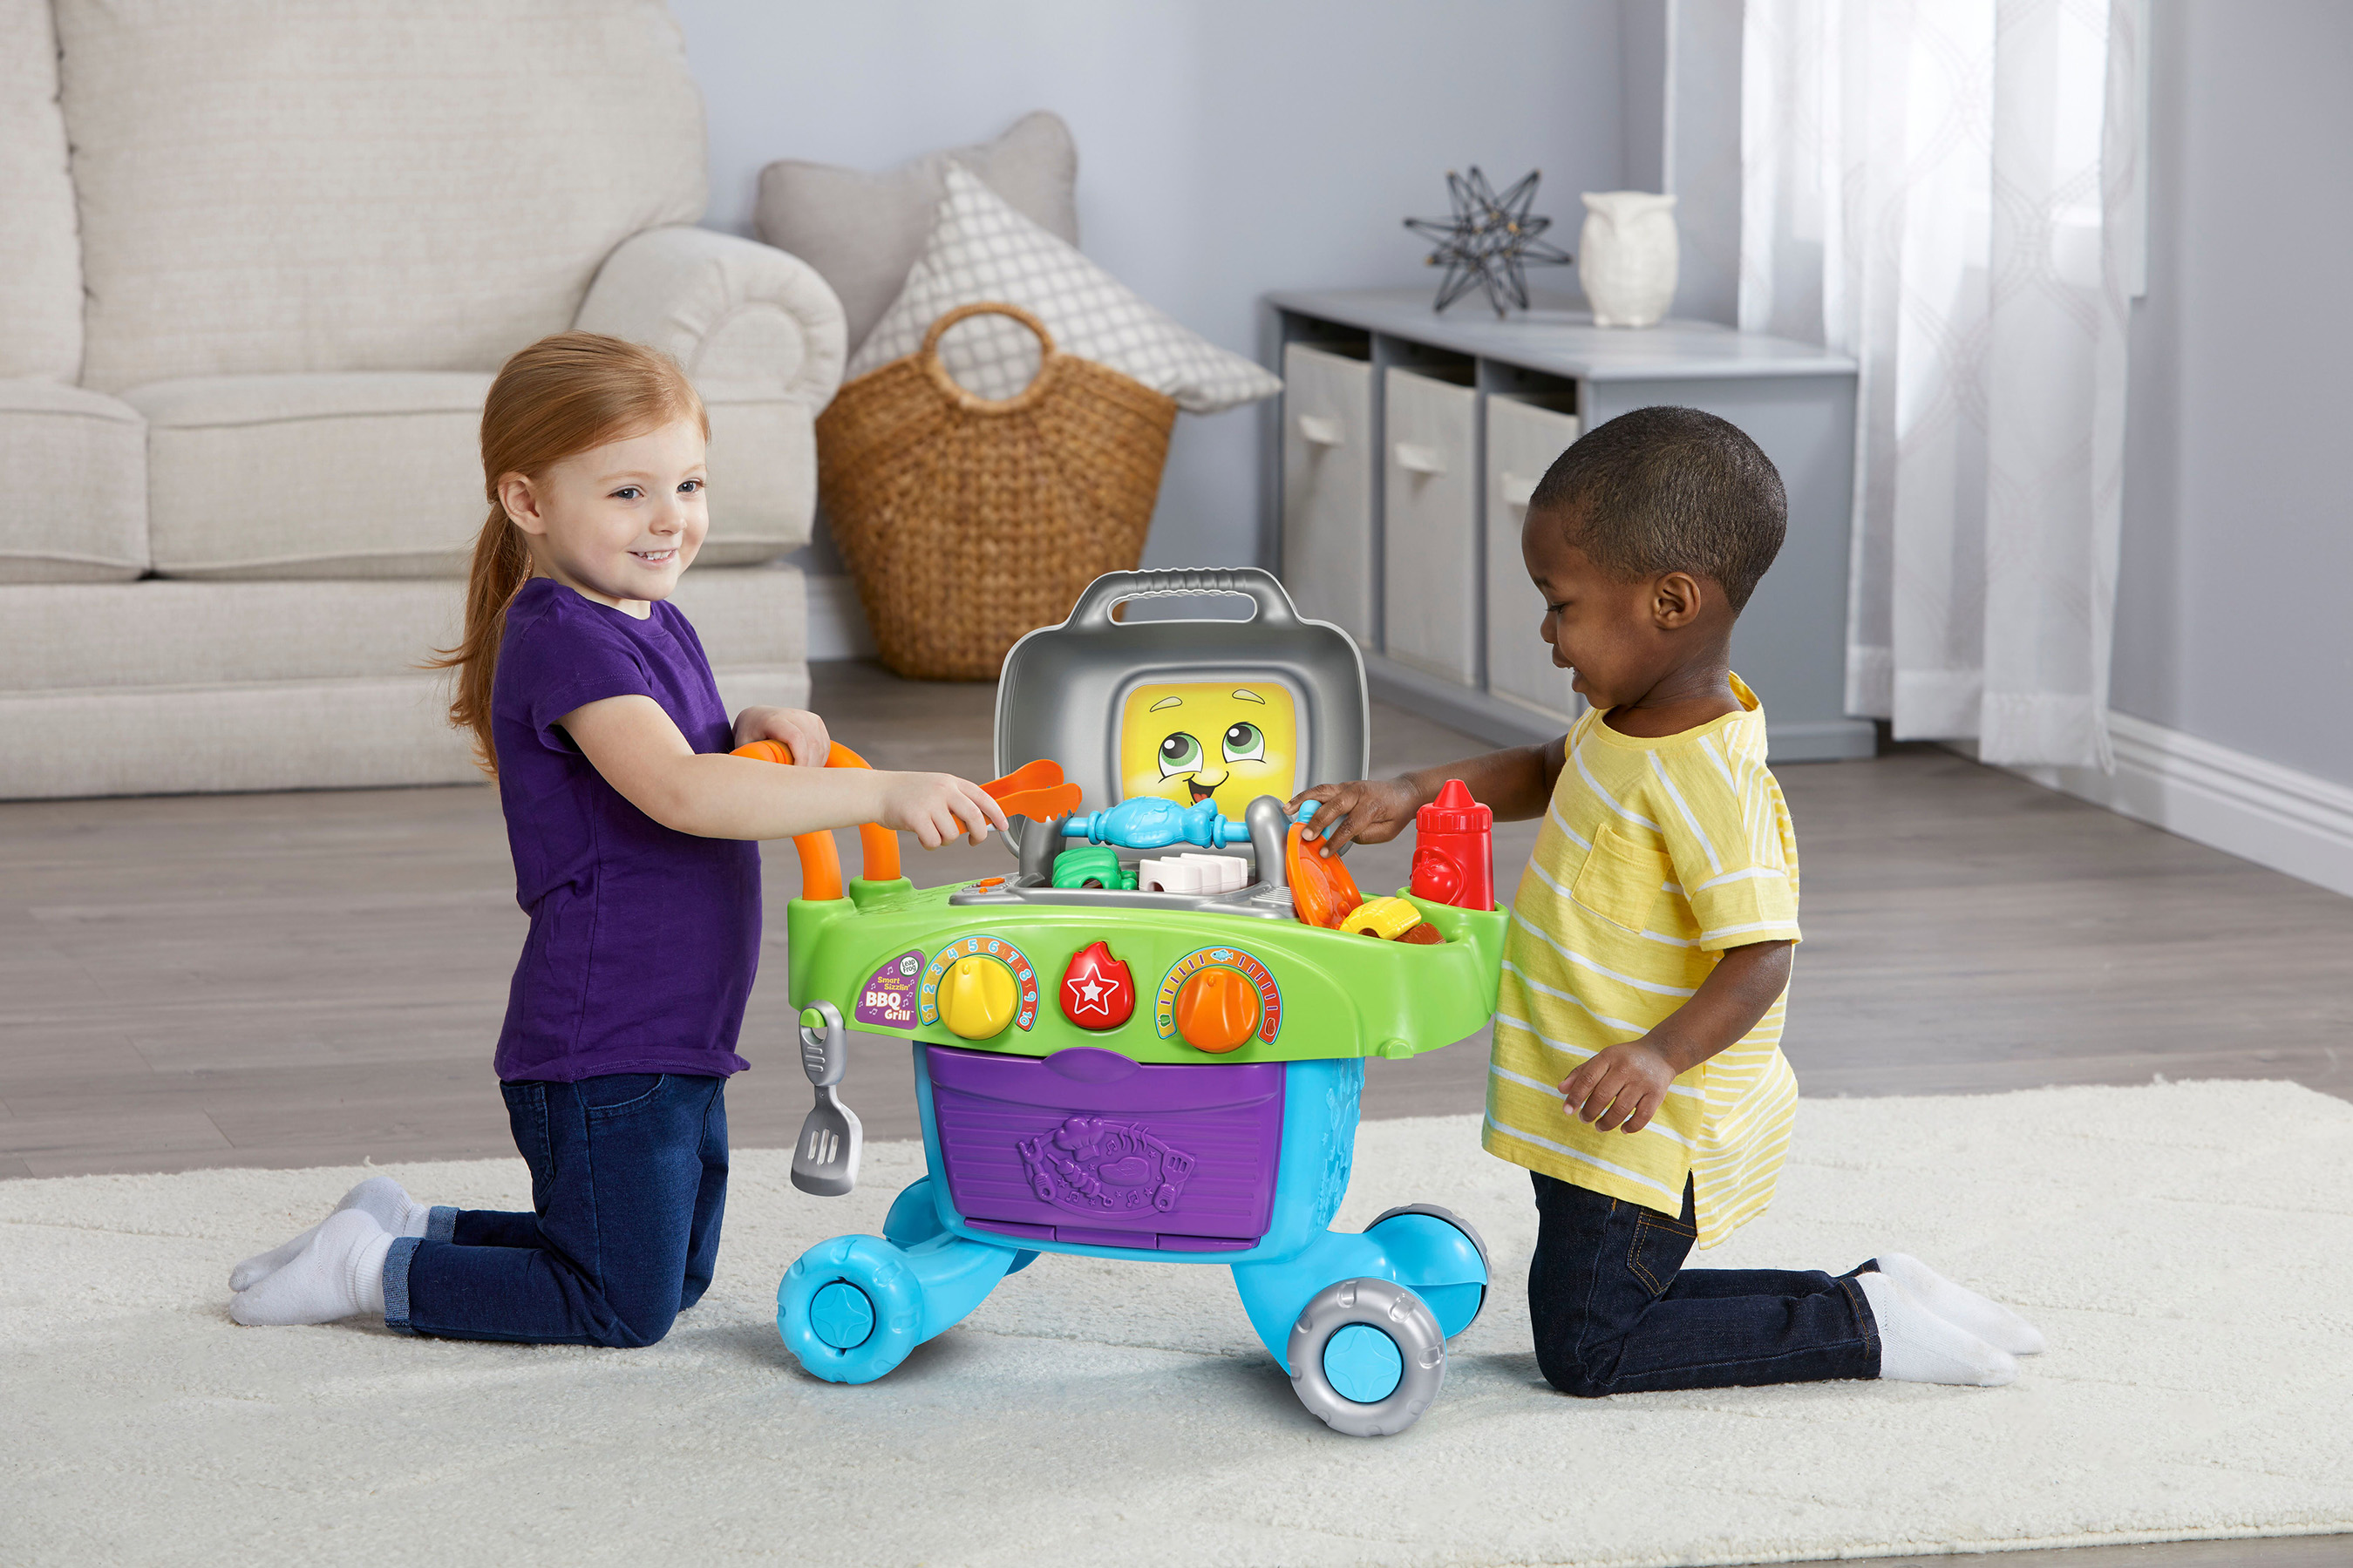 LeapFrog® expands infant and preschool collection with new learning toys, such as the Smart Sizzlin' BBQ Grill™.